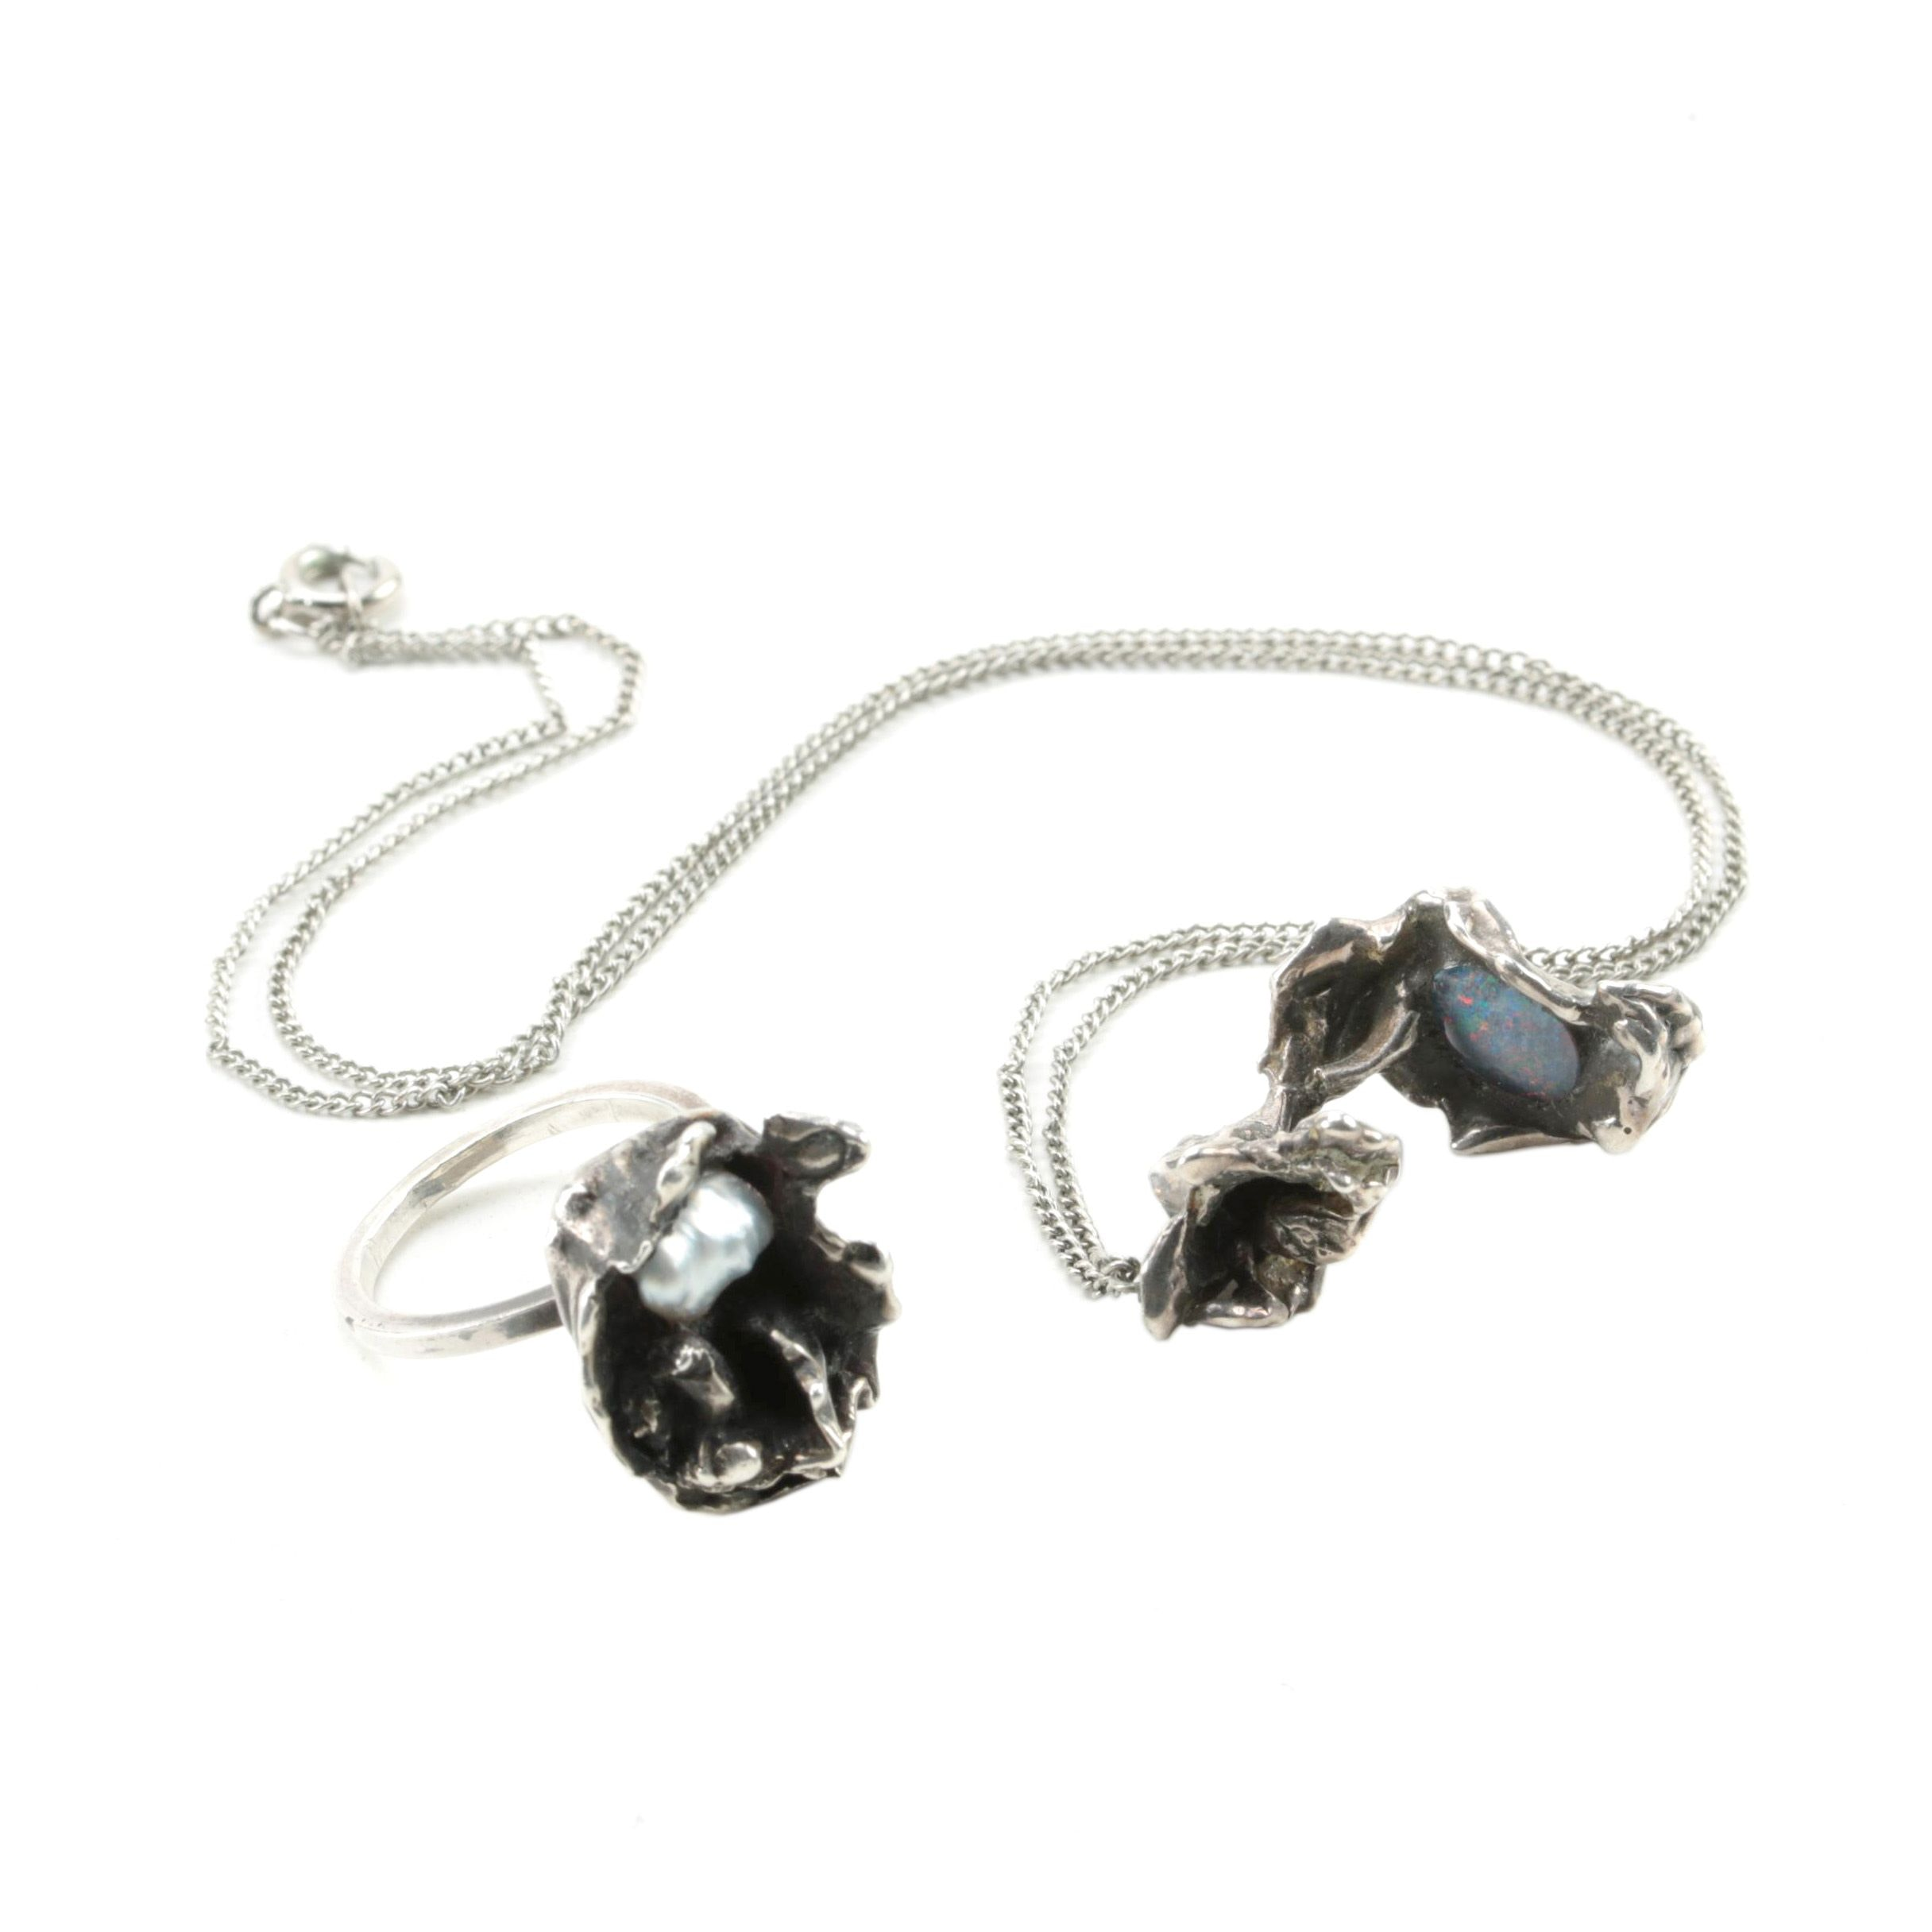 Sterling Silver Opal and Cultured Pearl Biomorphic Ring and Pendant Necklace